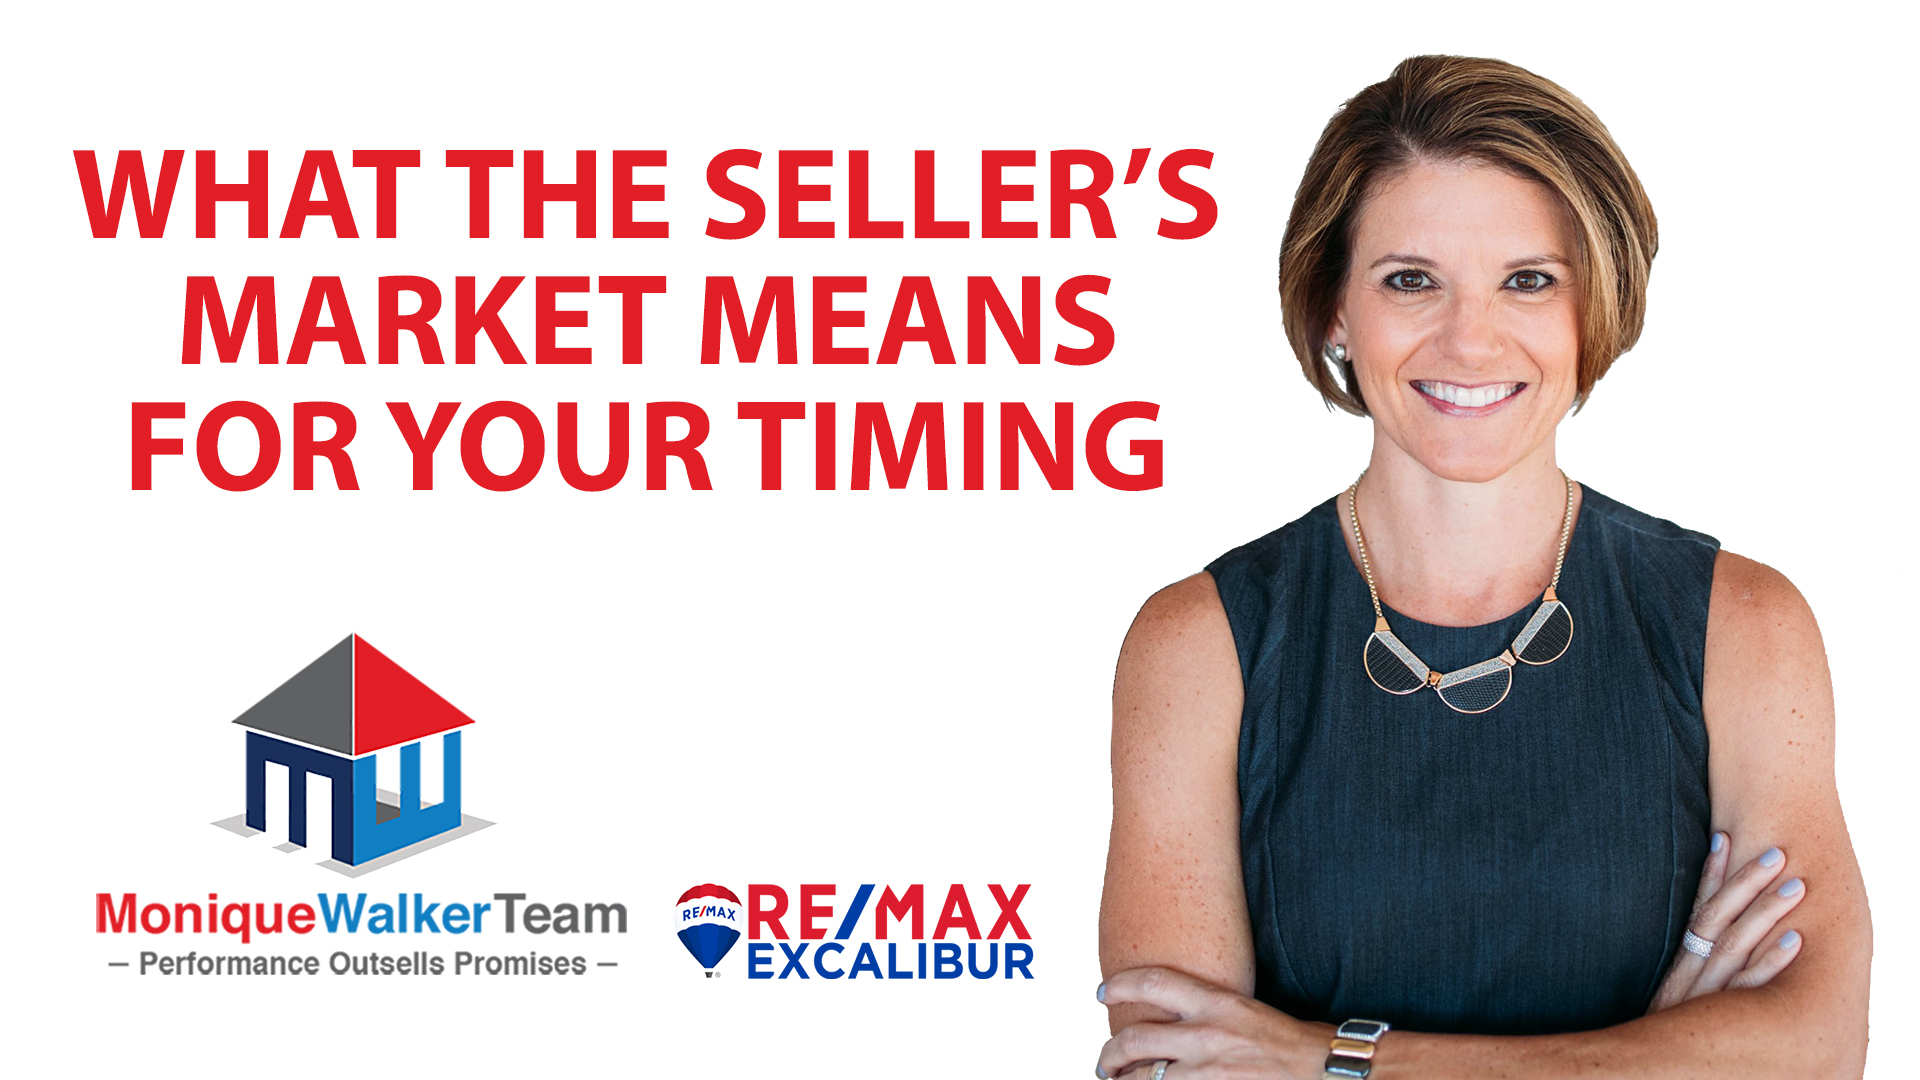 What's the Best Season to Sell?